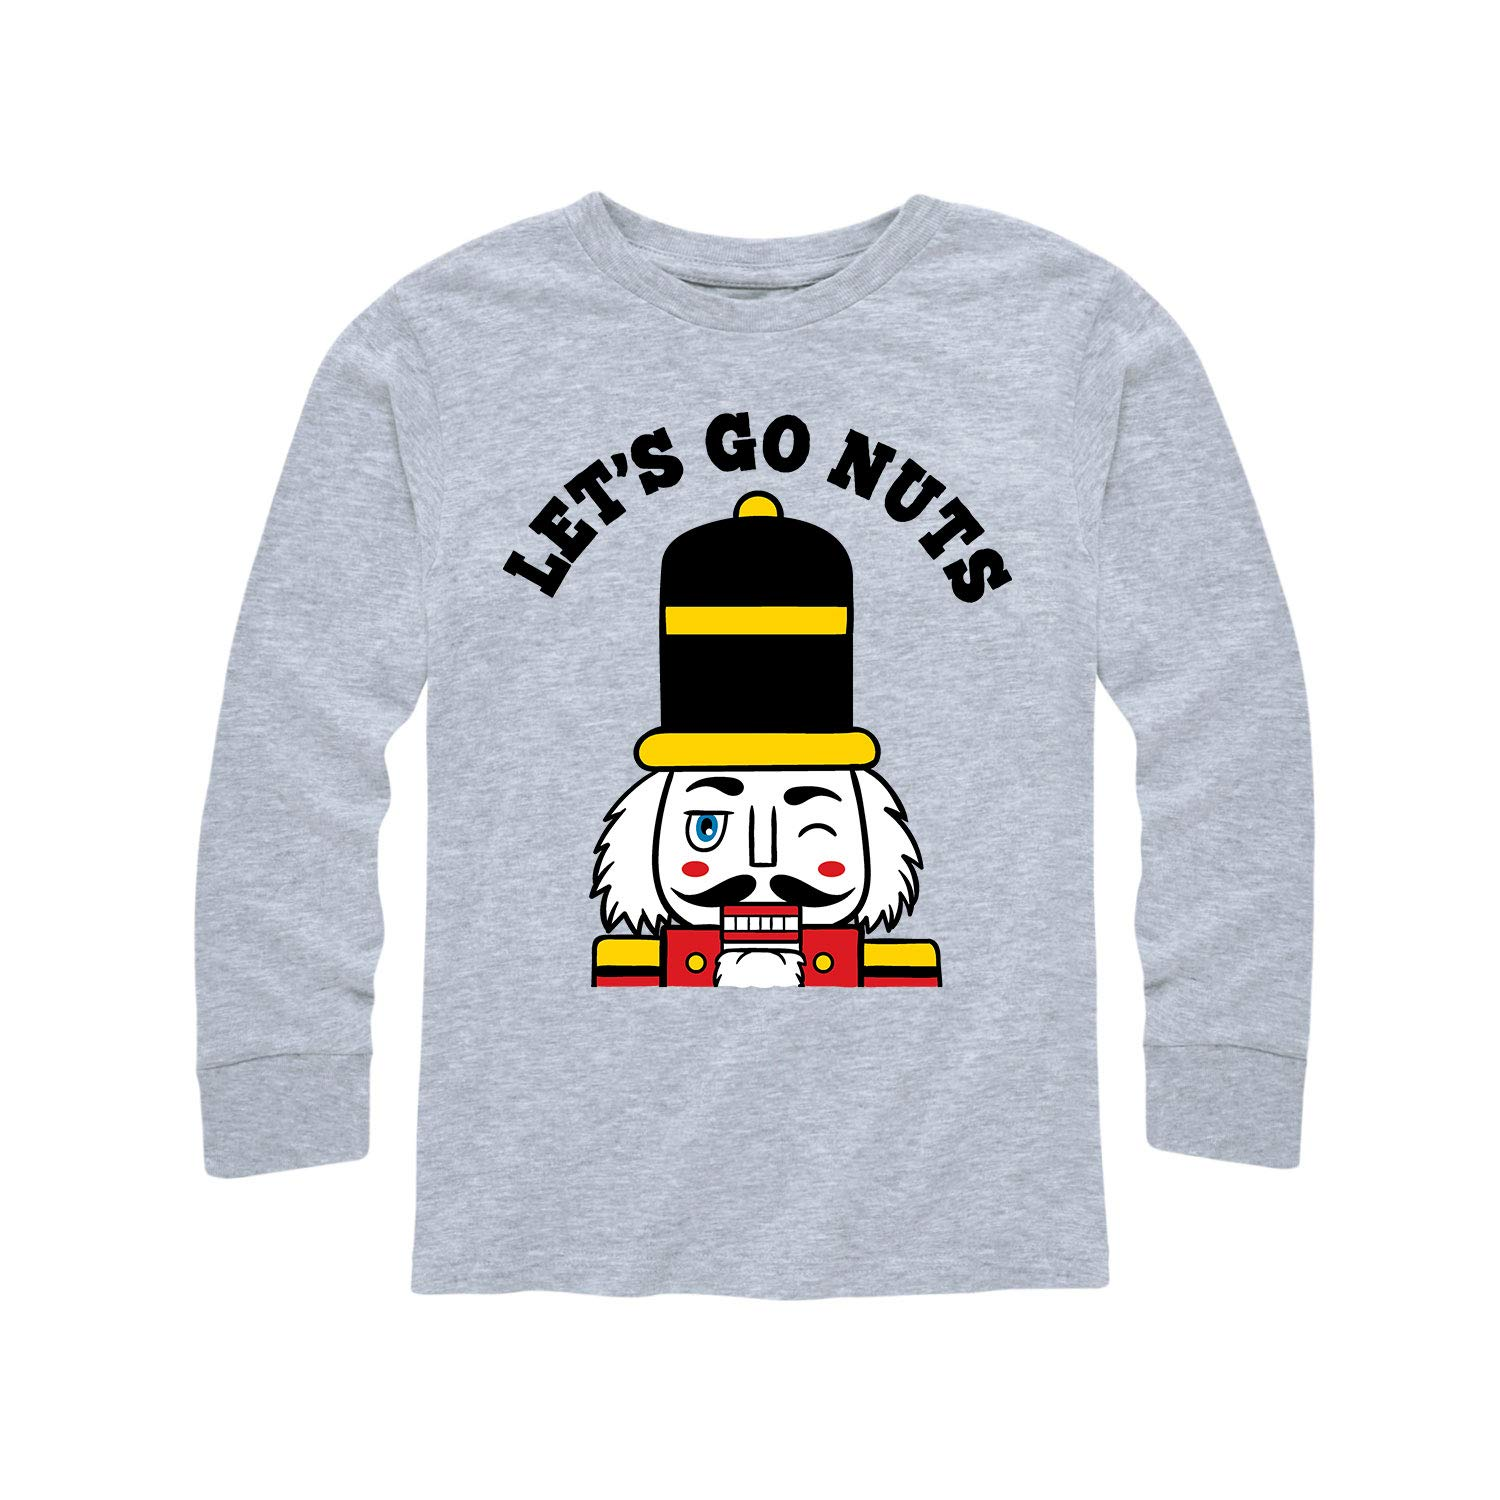 Instant Message Lets Go Nuts Toddler Long Sleeve Tee